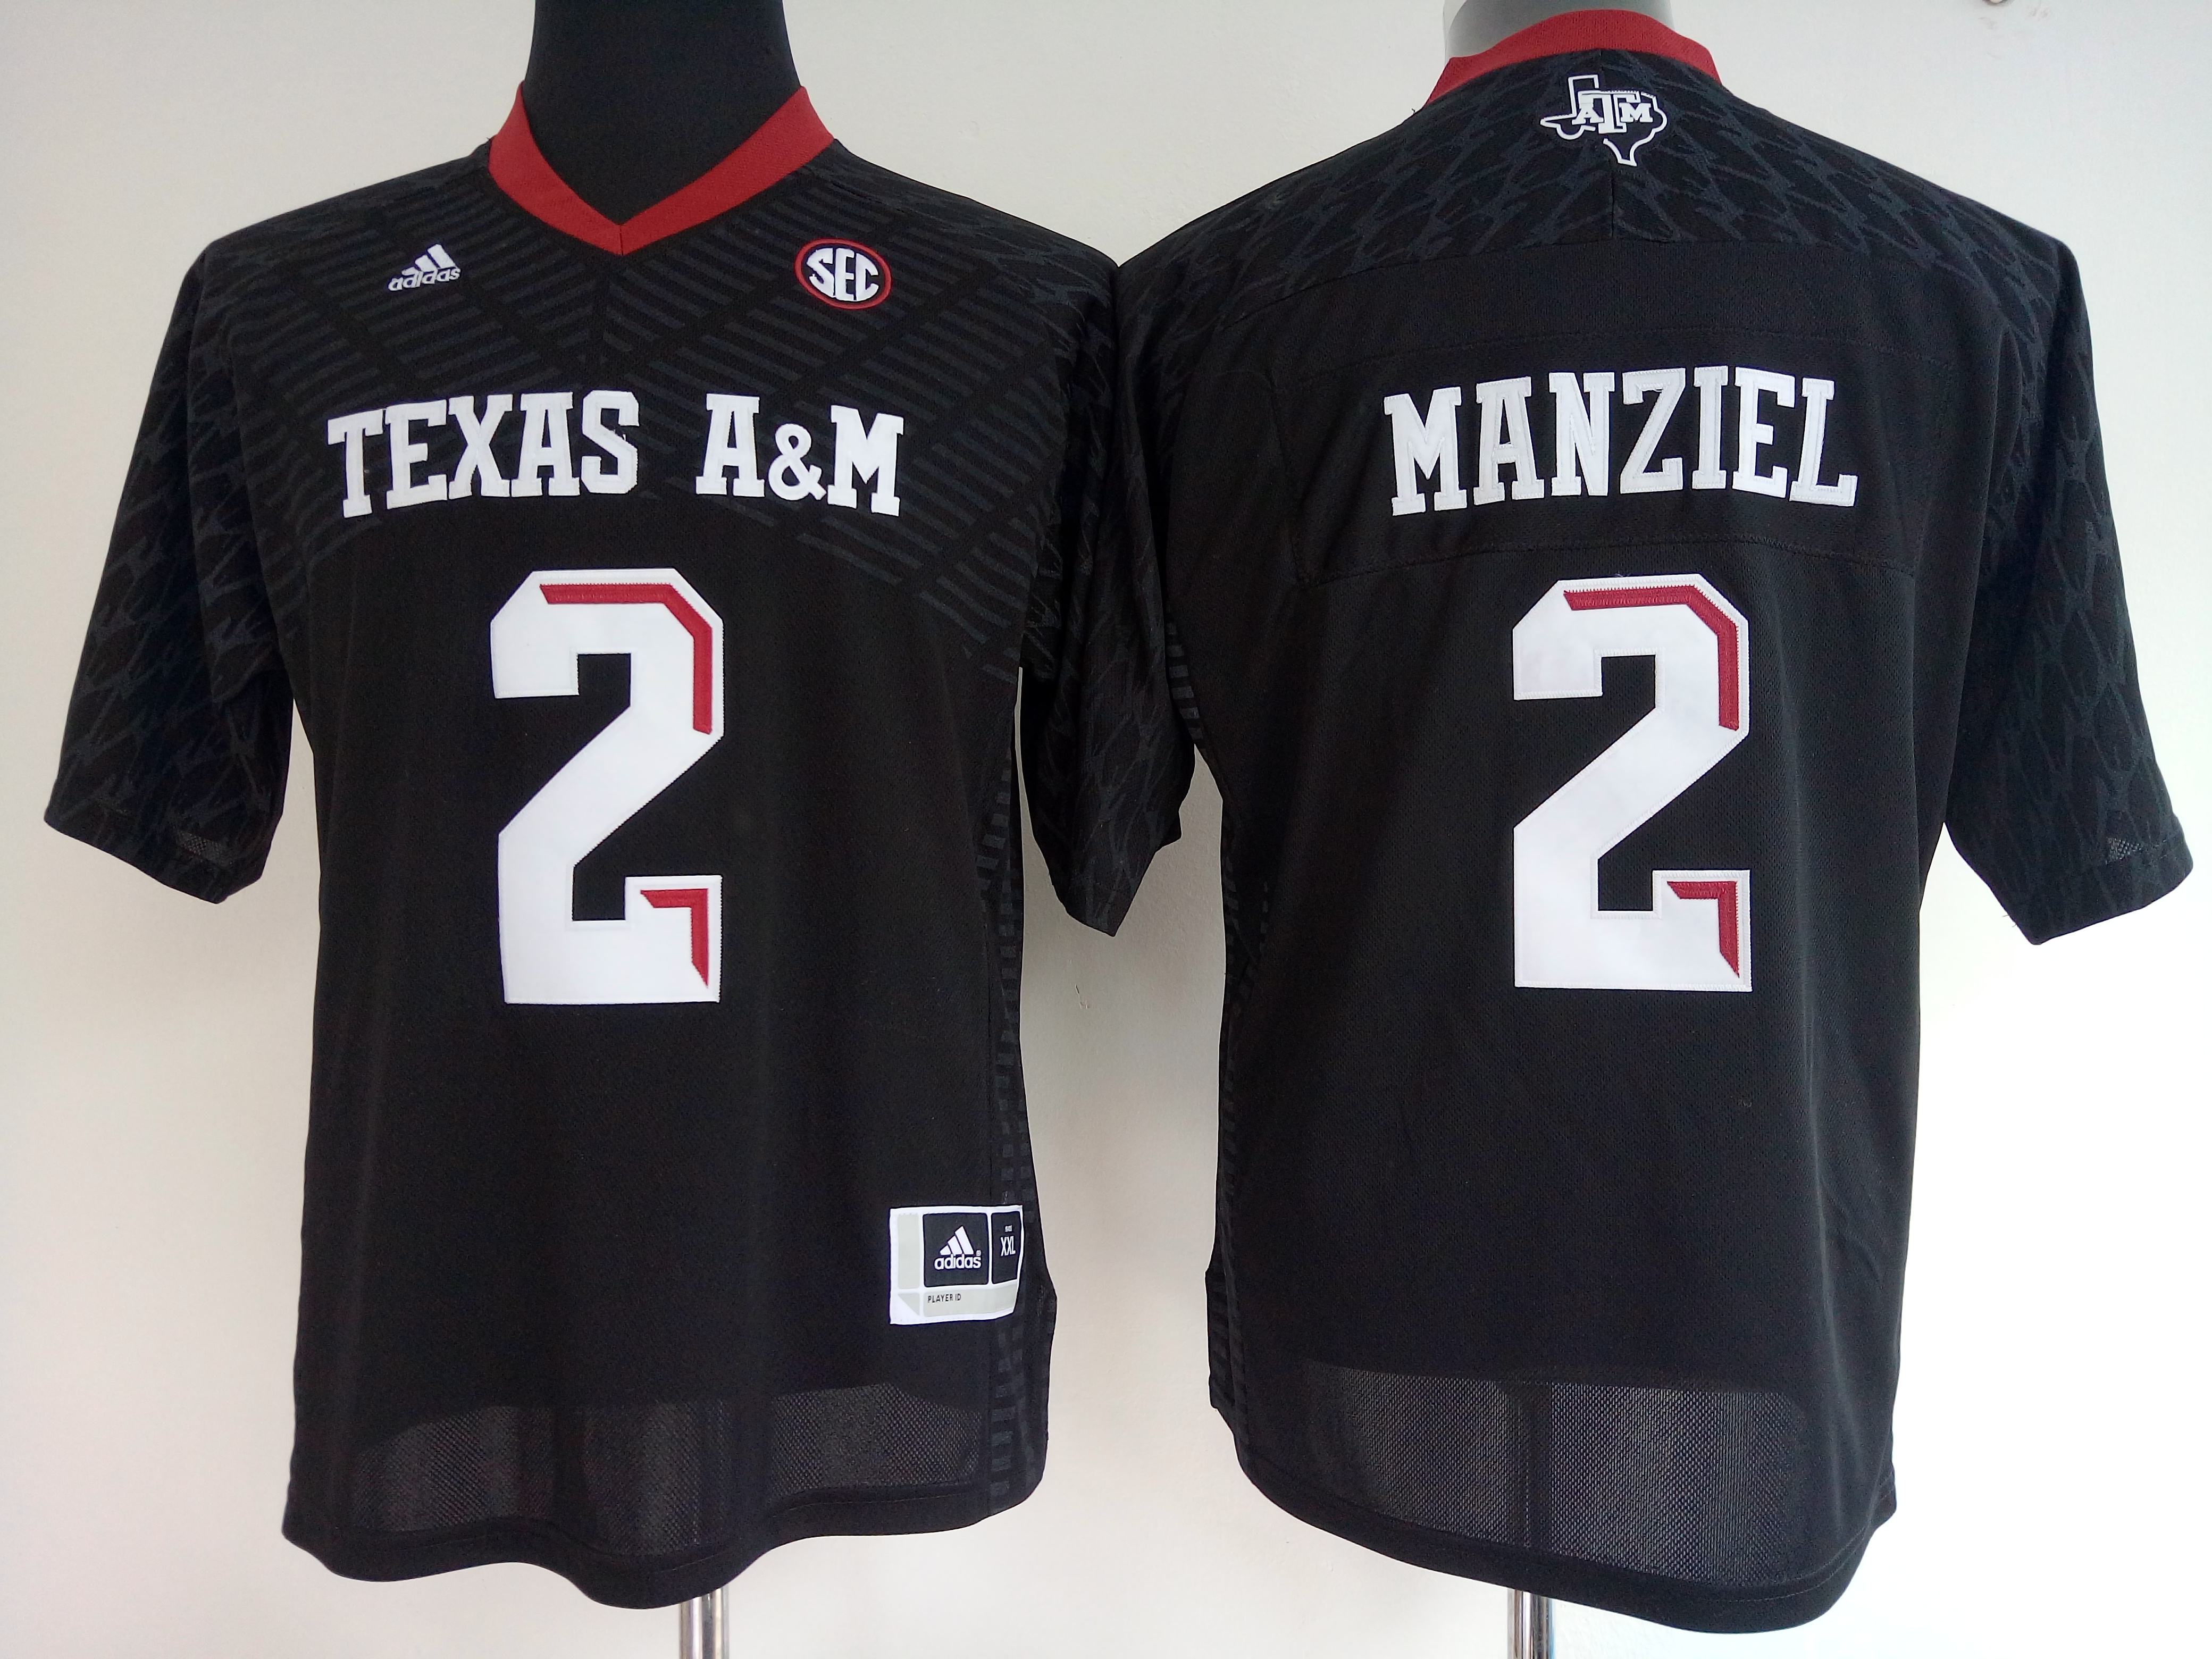 NCAA Womens Texas A&M Aggies Black 2 manziel jerseys